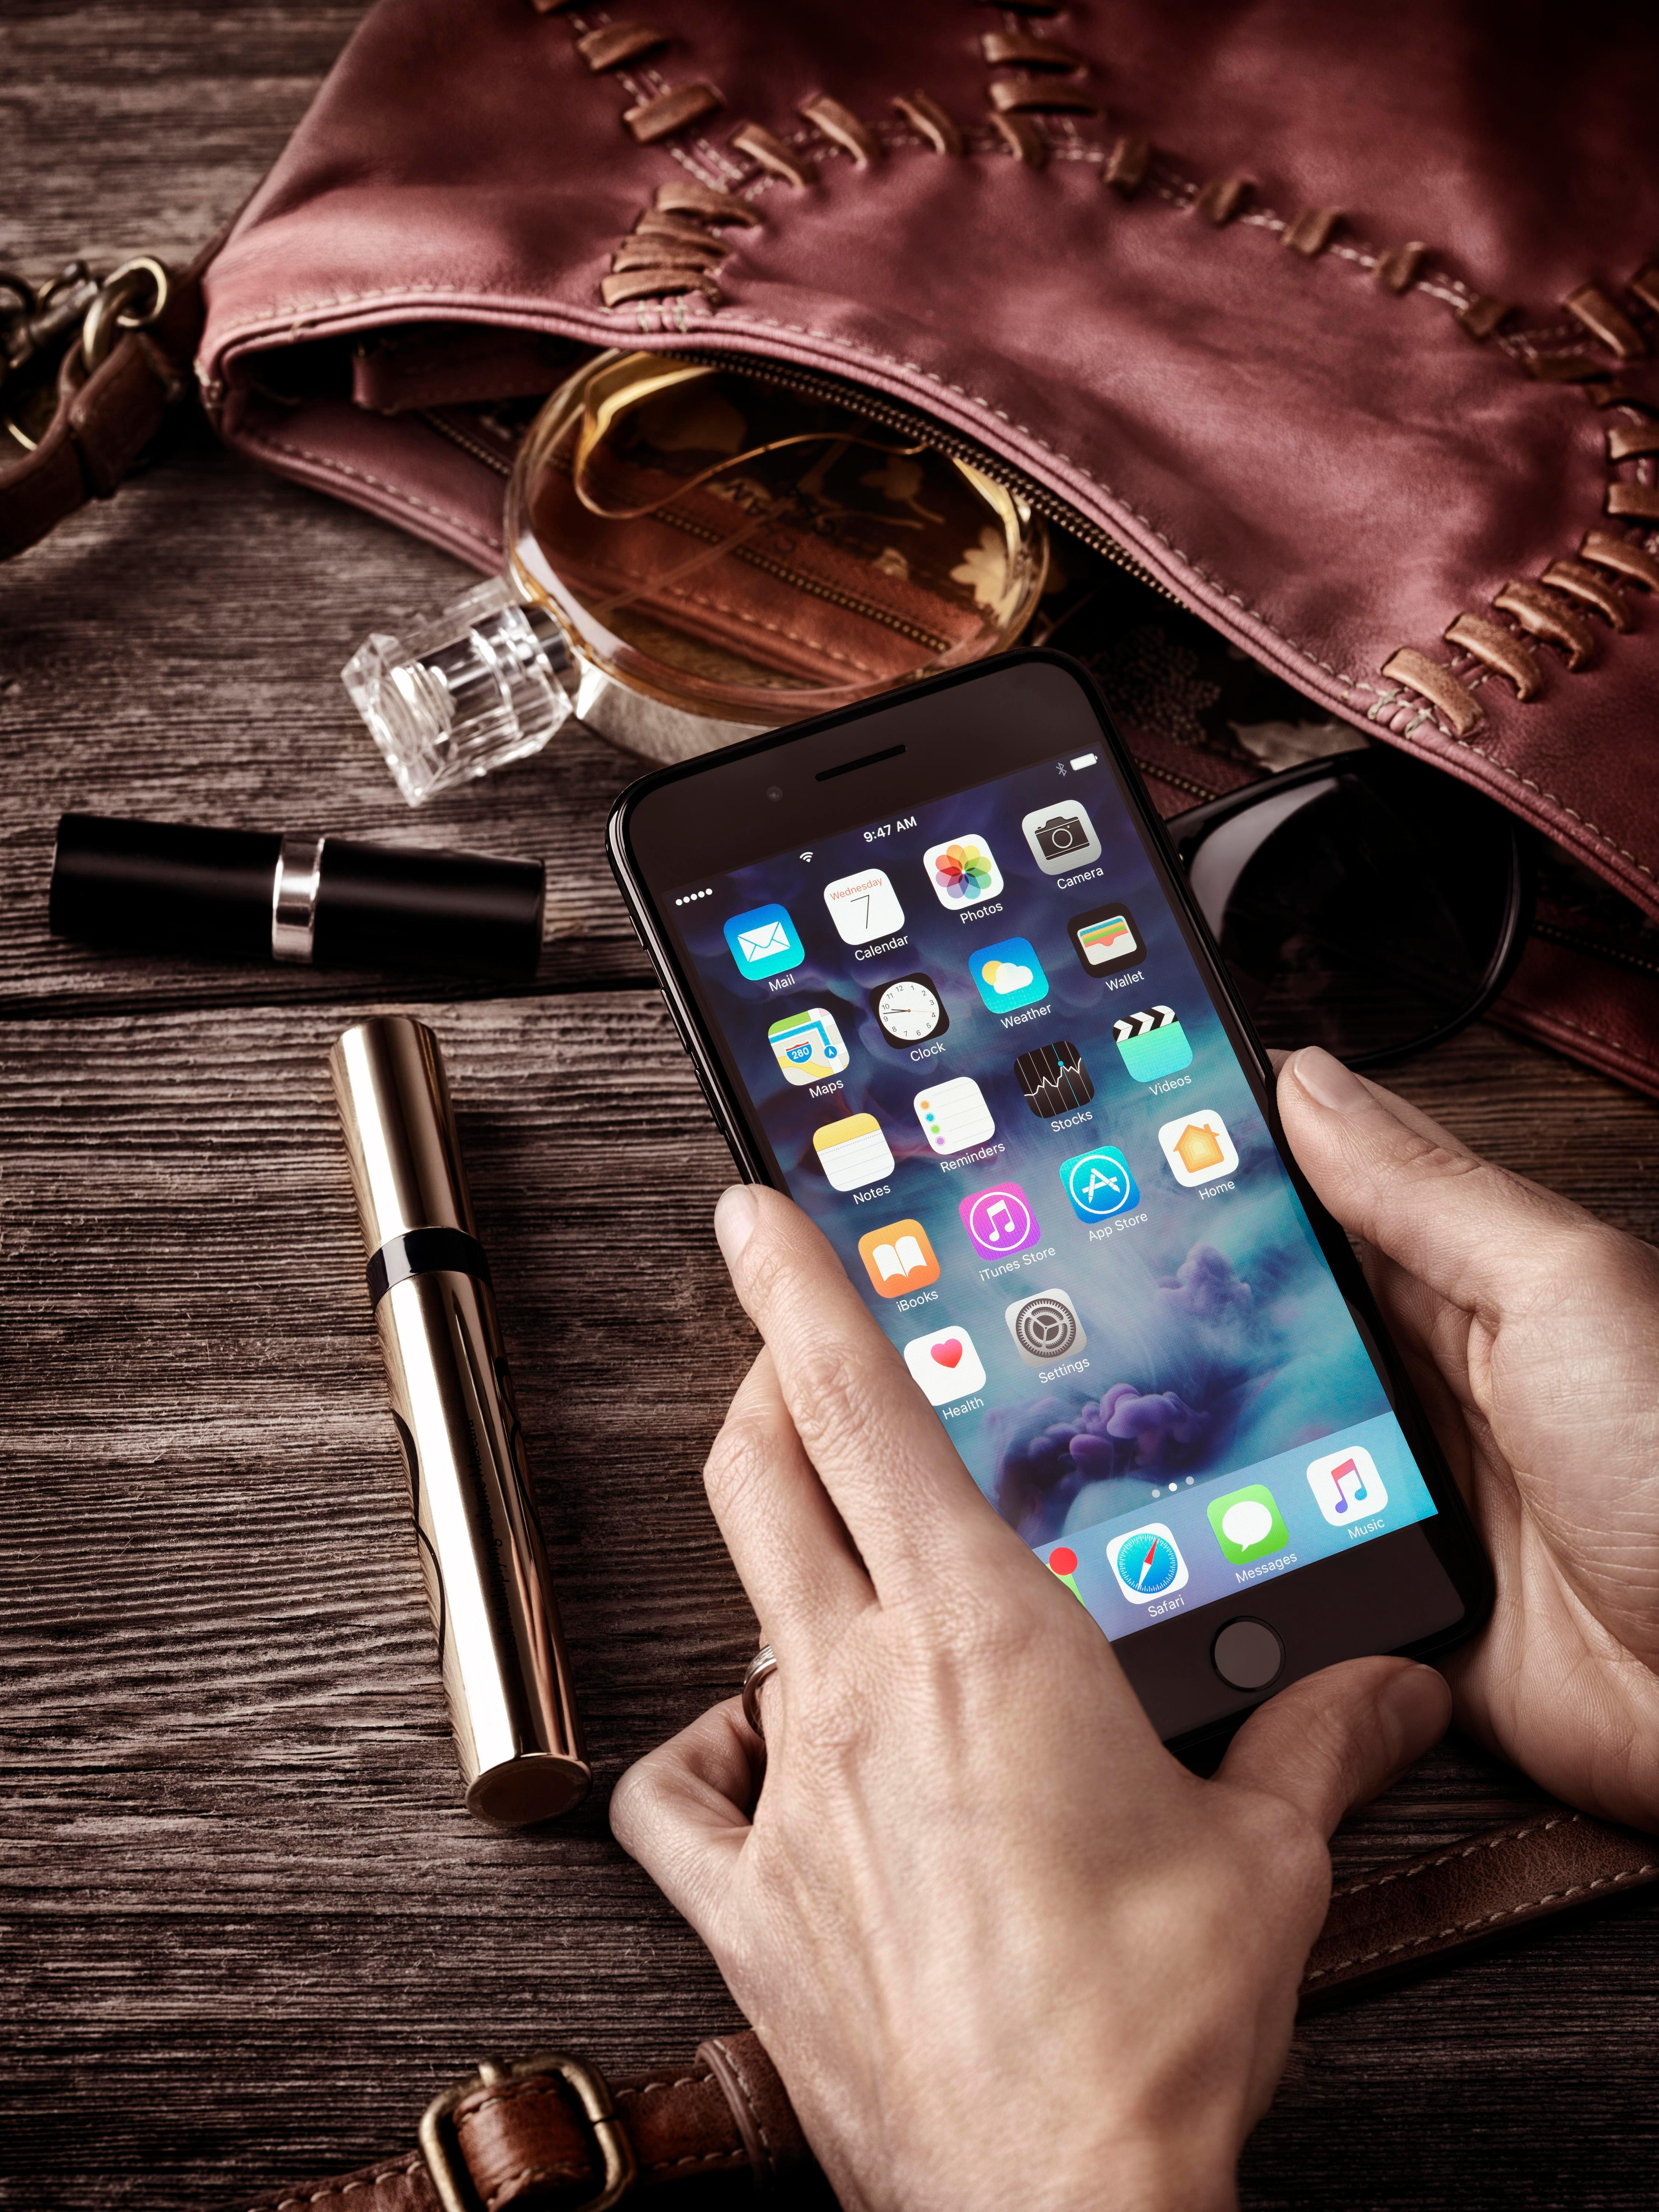 MODEL RELEASED Woman hands holding Apple iPhone 7 Plus, with her purse, makeup and accessories on the table, still lifeVARIOUS